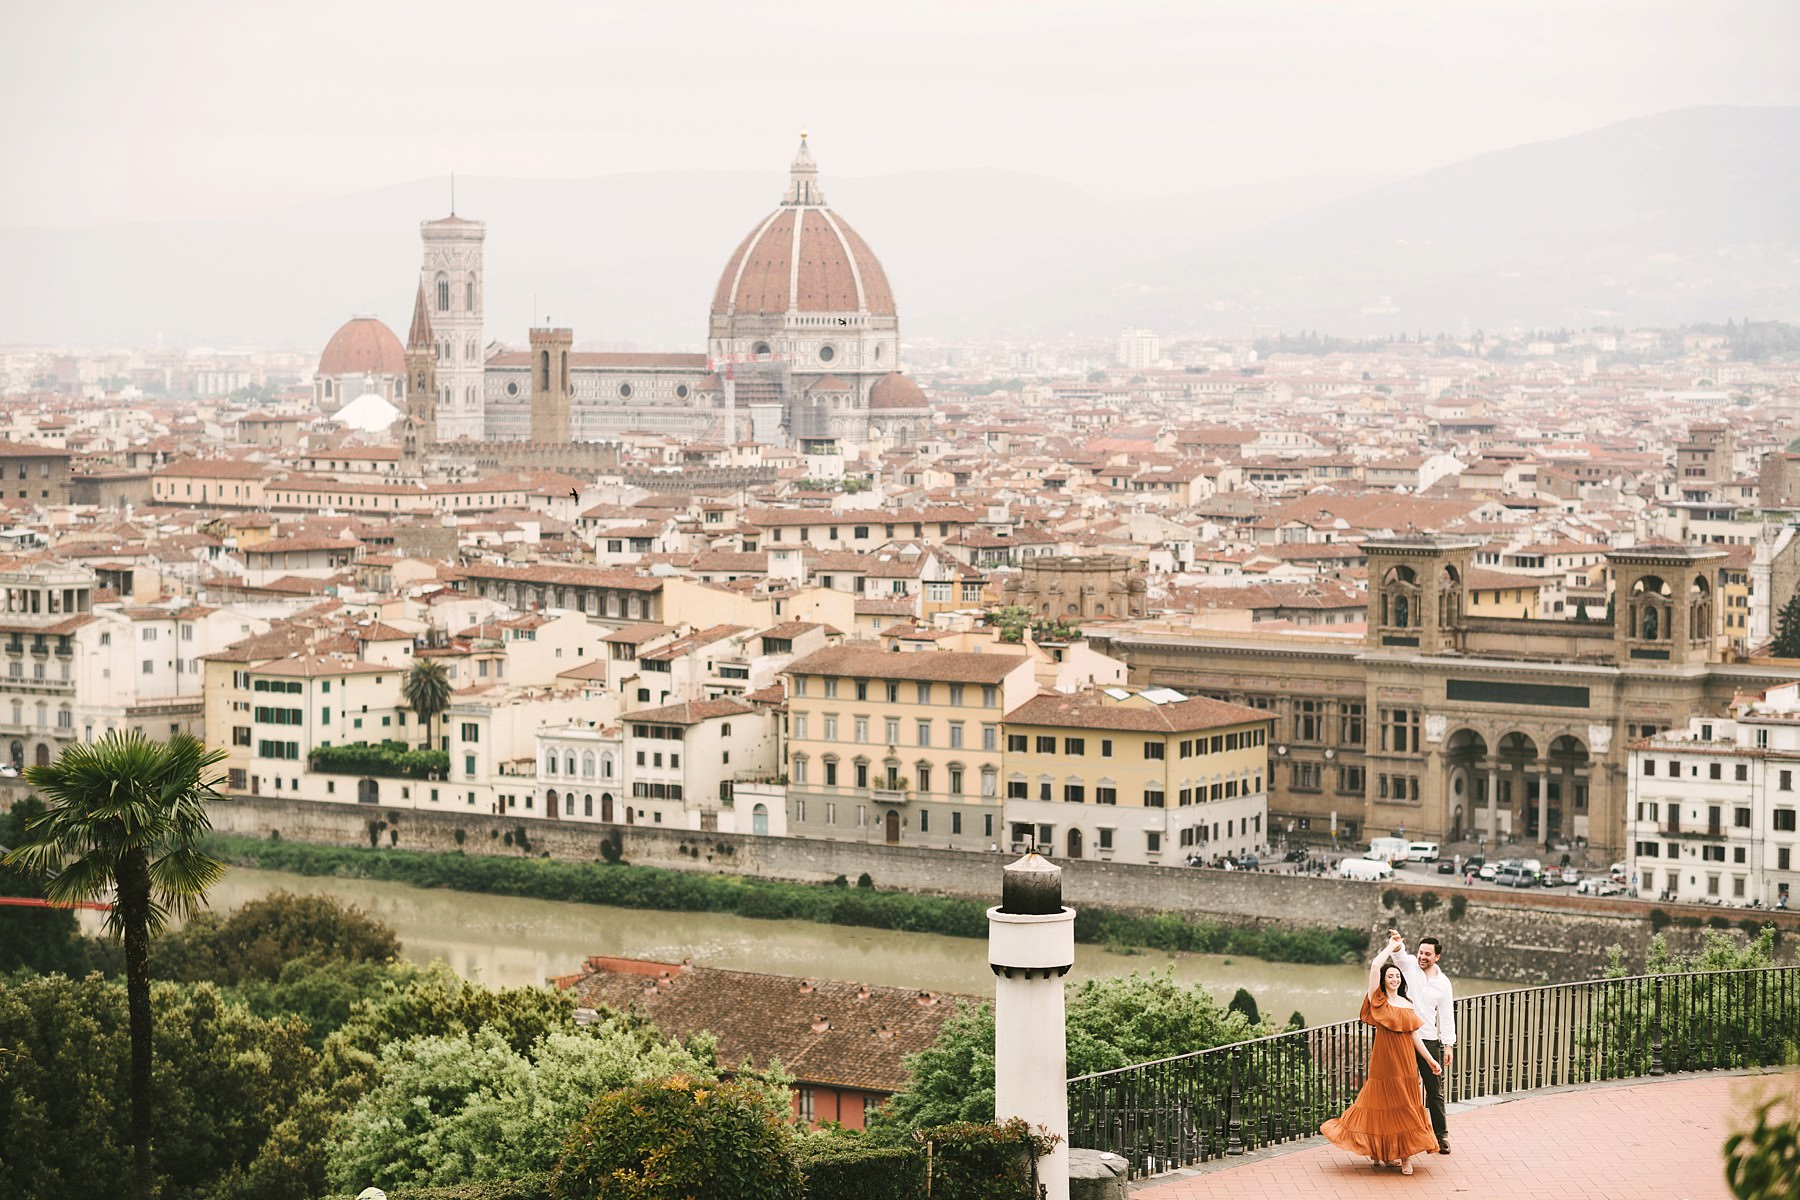 Unforgettable couple photo session in Florence at Piazzale Michelangelo, one of the most romantic panoramic spot of the city. Enjoy the soft light of the sunrise time for the best romantic and intimate experience